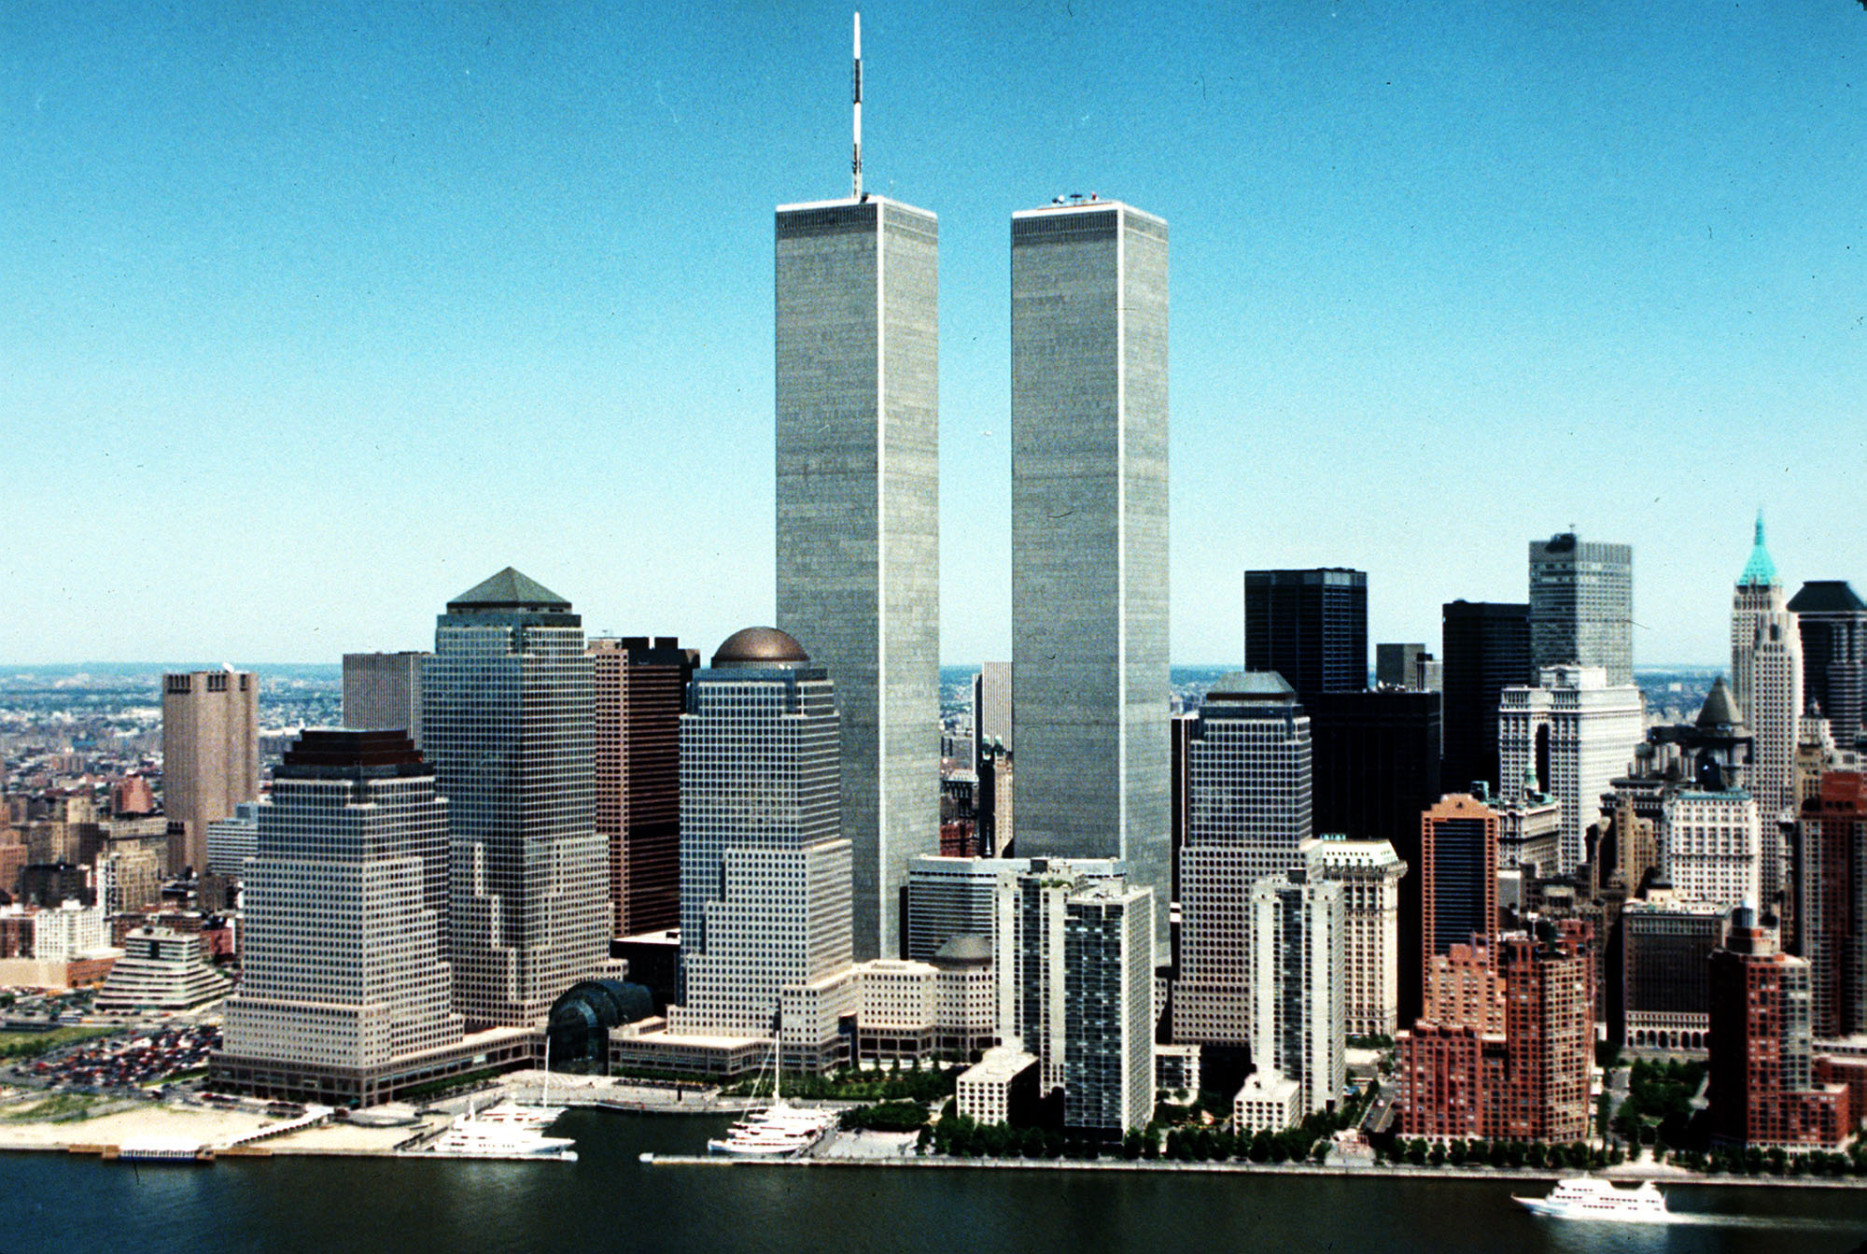 FILE - In this 1990 file photo, New York City skyline with World Trade Center's twin towers in the center. Before the towers crumbled, before the doomed people jumped and the smoke billowed and the planes hit, the collective American memory summoned one fleeting fragment of beauty: a clear blue sky. (AP Photo, File)